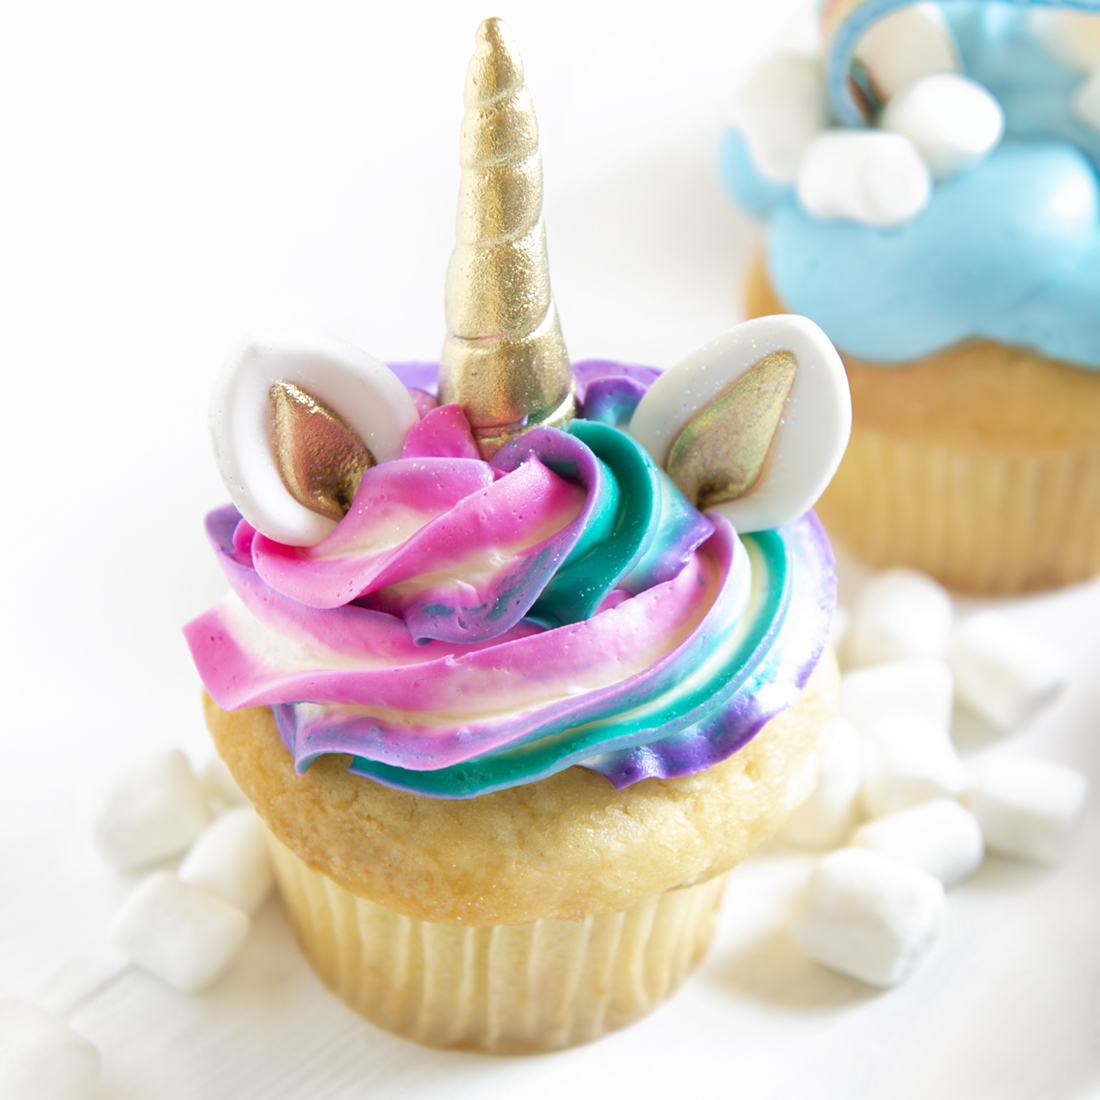 Unicorns - Vanilla, chocolate, lemon, almond or strawberry cupcake, vanilla buttercream frosting. Unicorn horn and ears. Color of your choice: $5.00 each, minimum of one dozen per flavor and design.